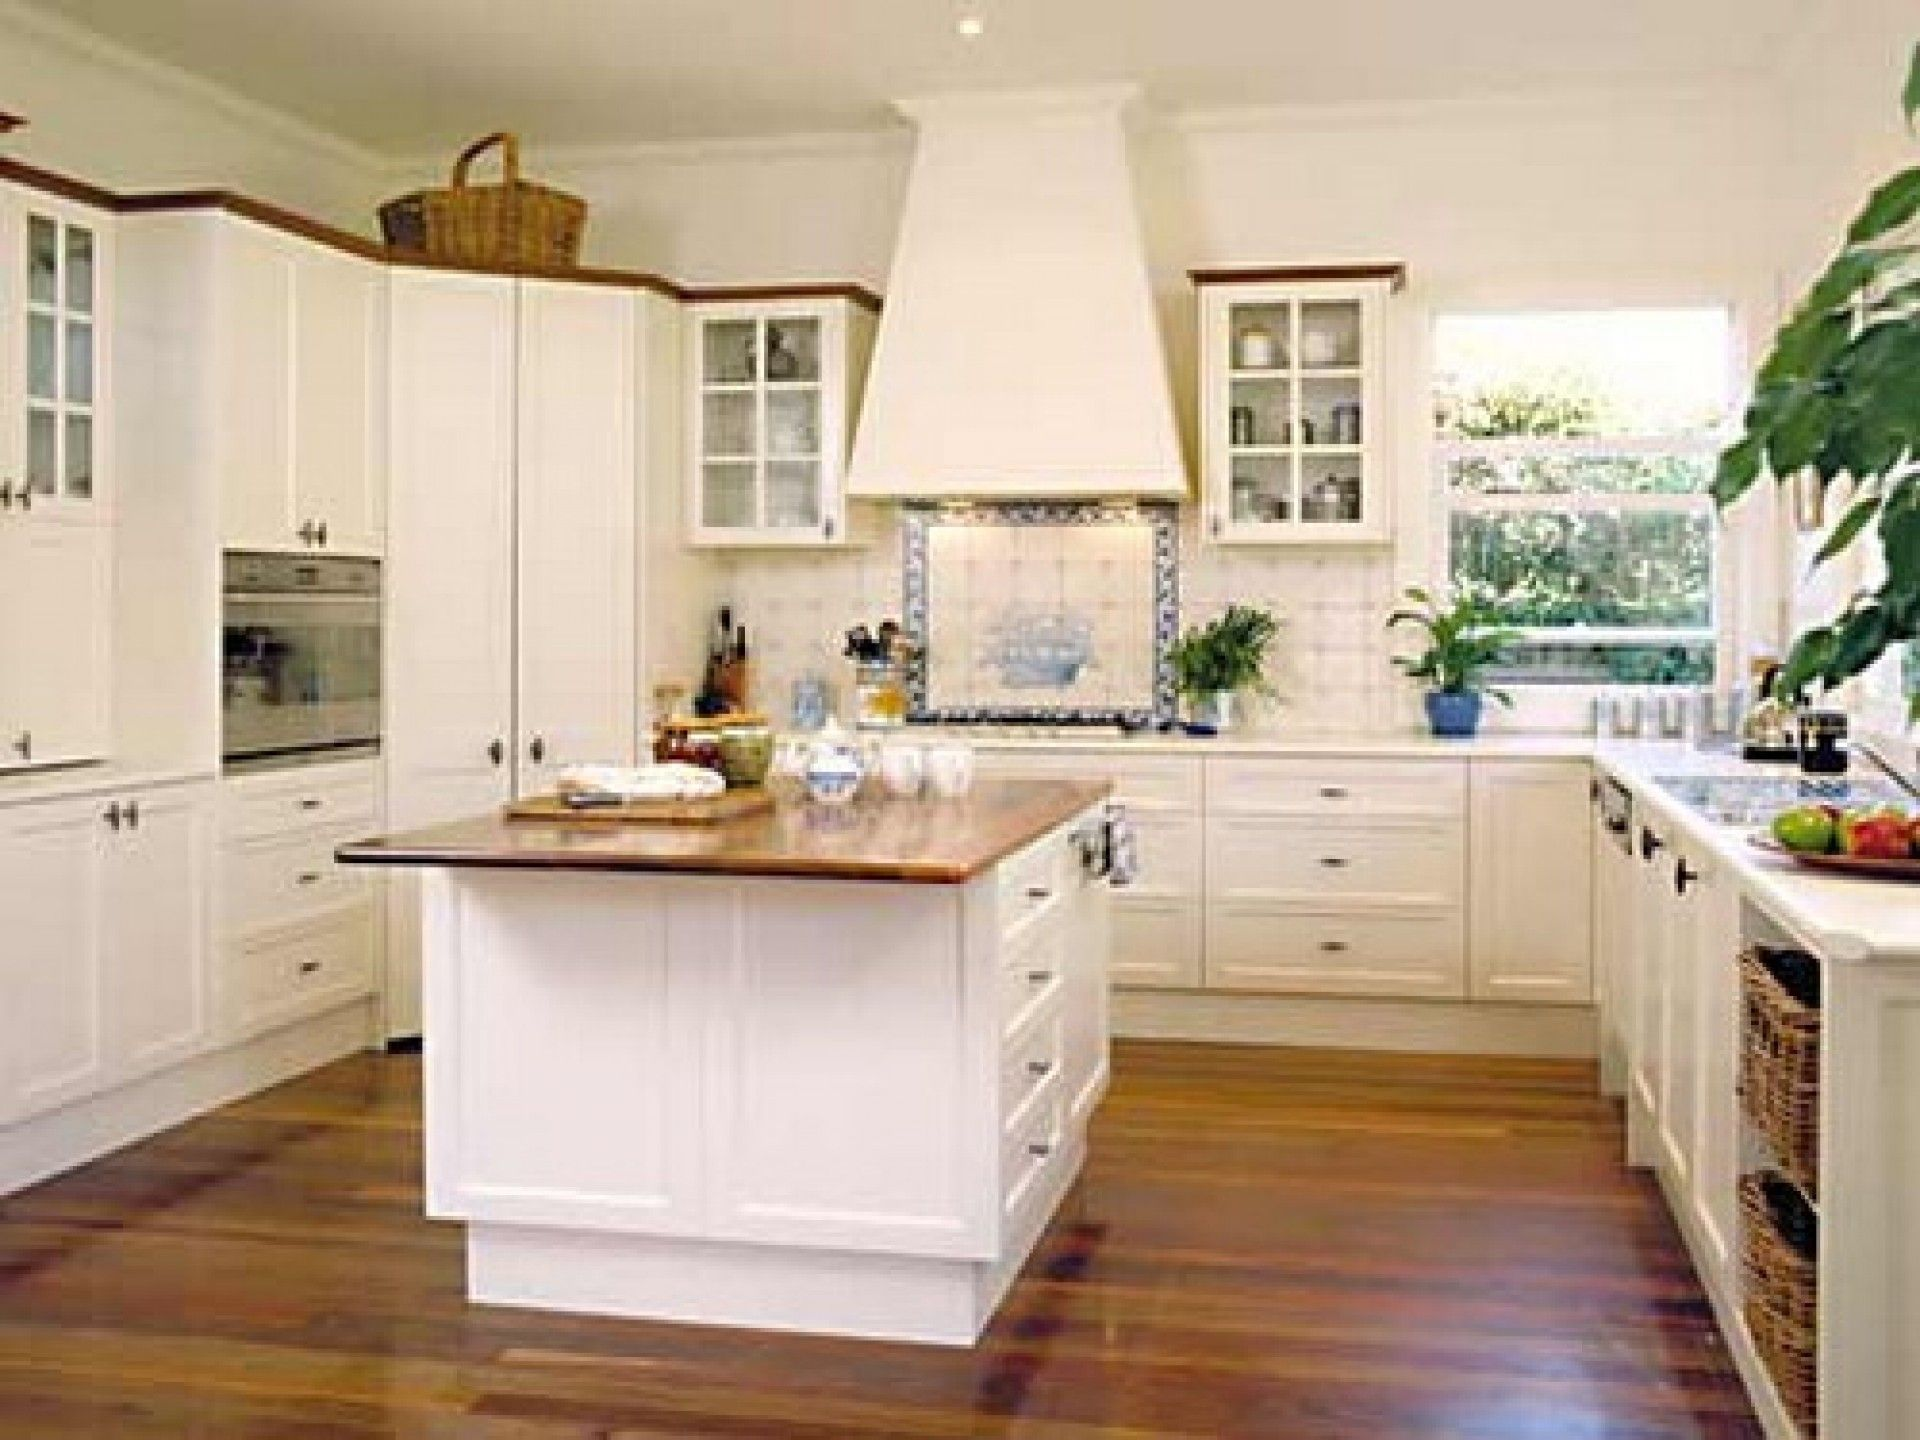 Stunning French Provincial Kitchen Design Ideas With Square Shape .